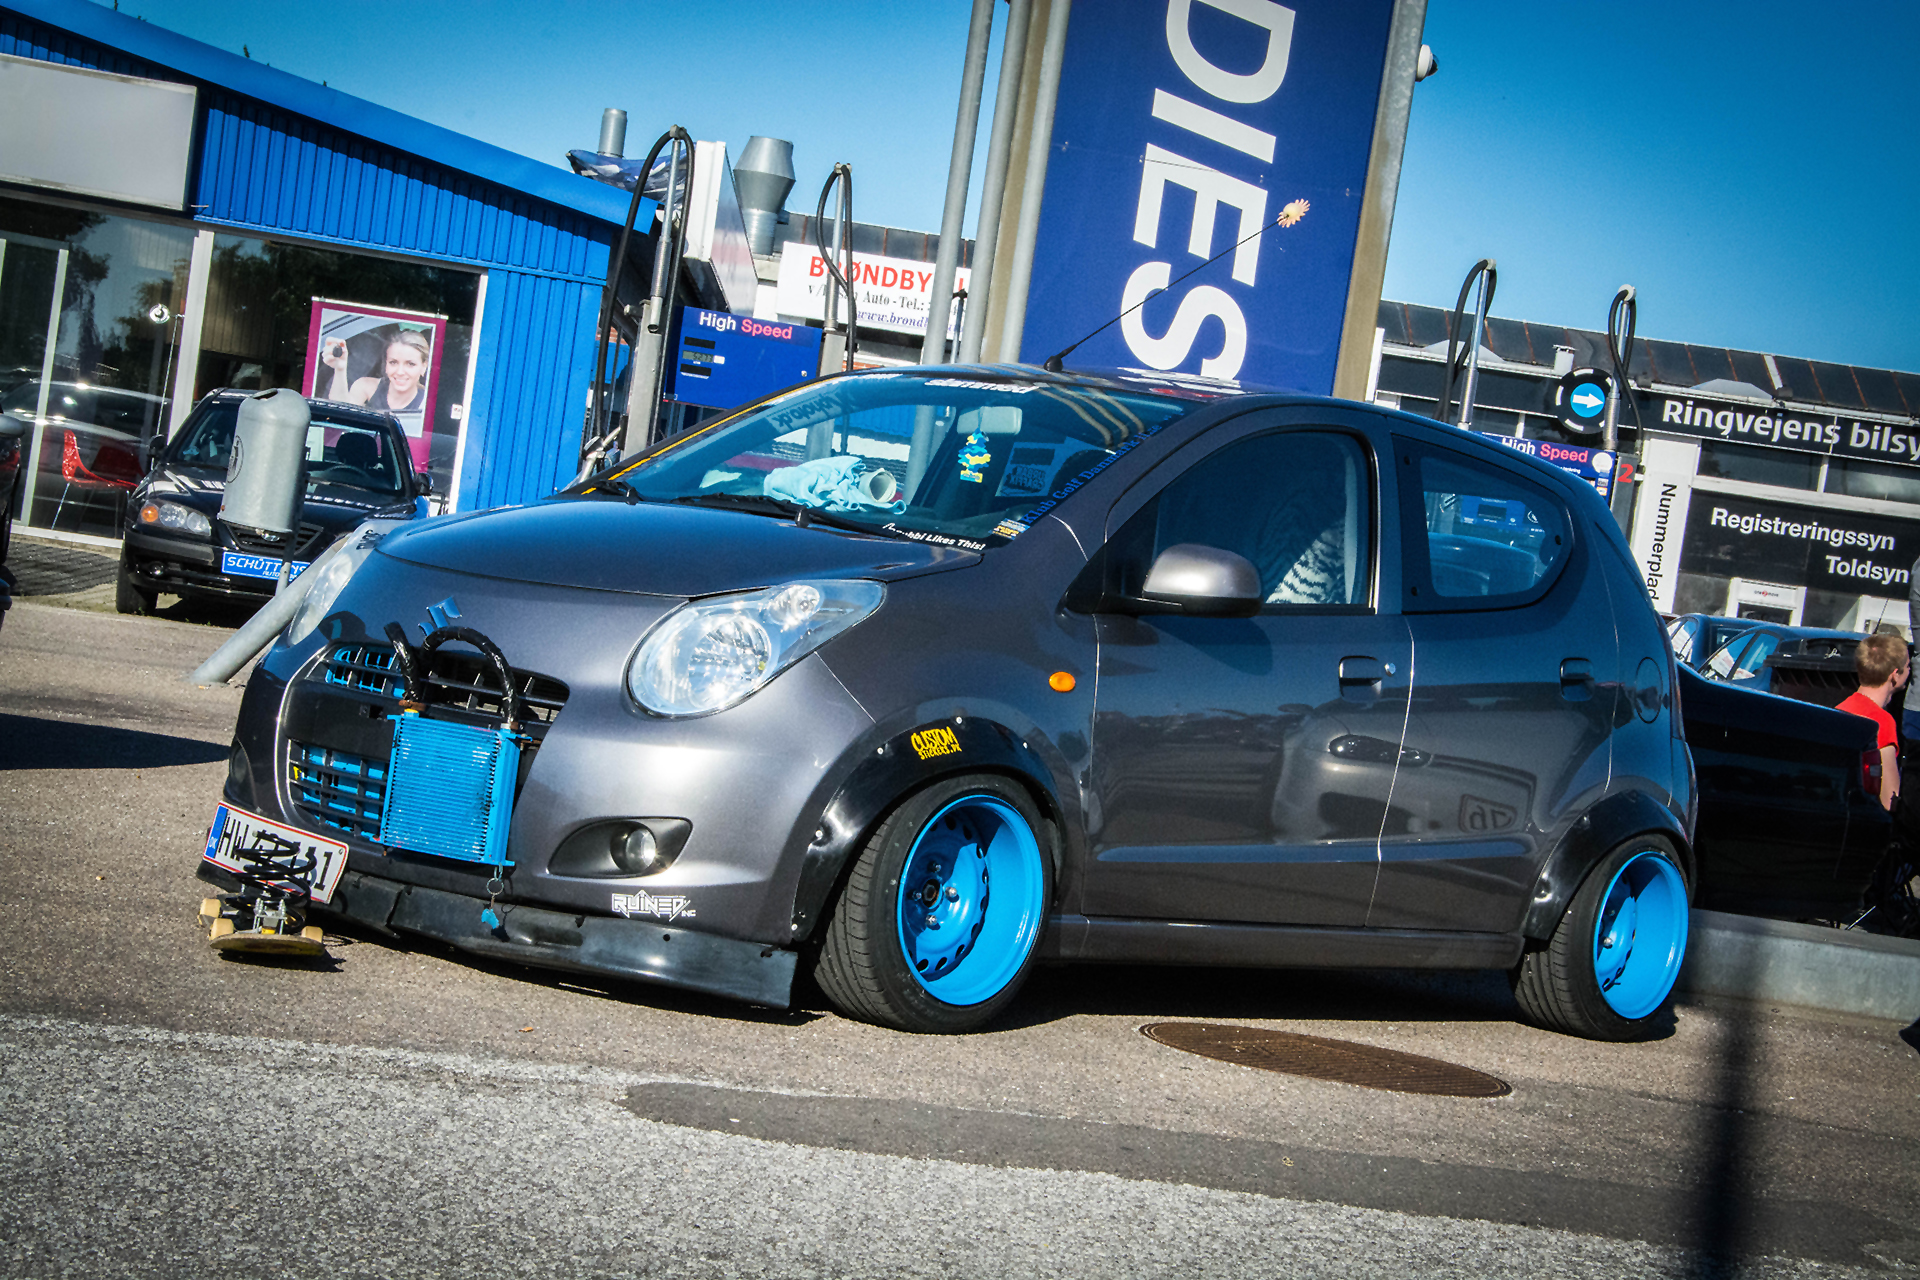 Crazy Suzuki Alto From A Car Meet I Went To Today - Car meets near me today